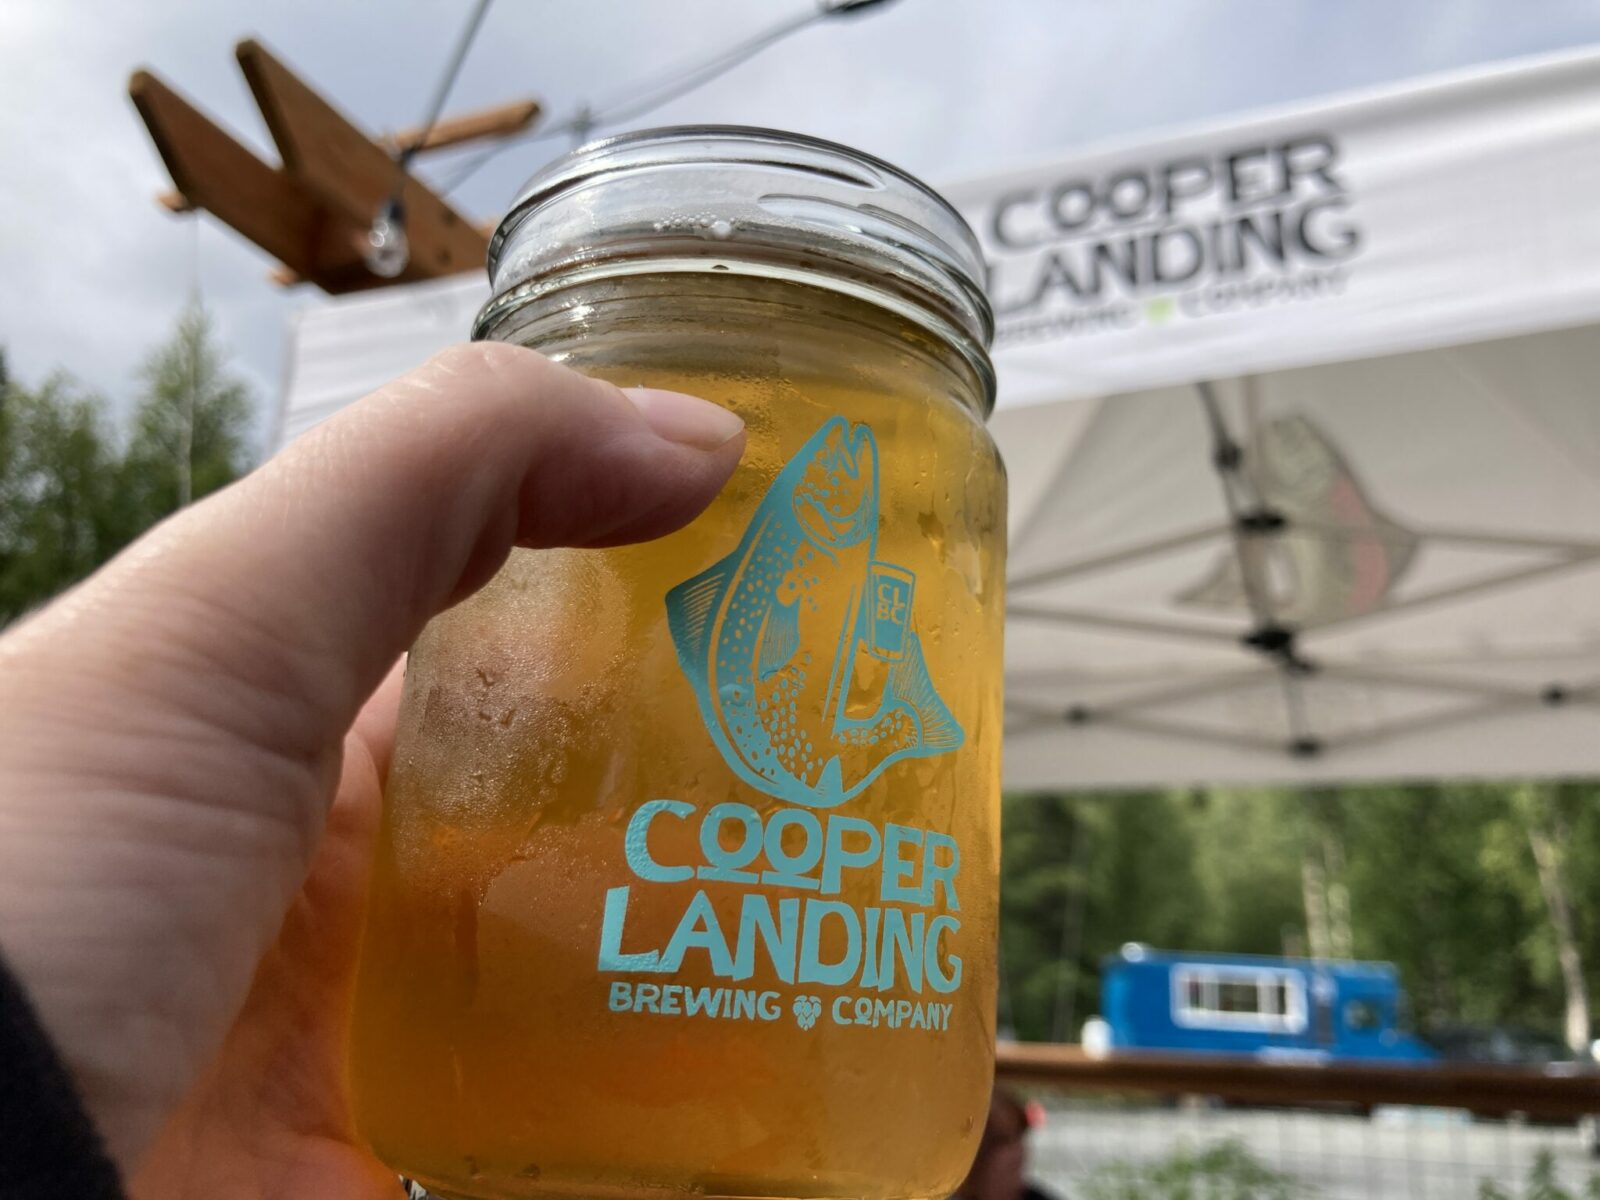 """a glass jar with beer in it that says """"cooper landing brewing company"""" with a picture of a salmon. A person's hand is holding the beer"""